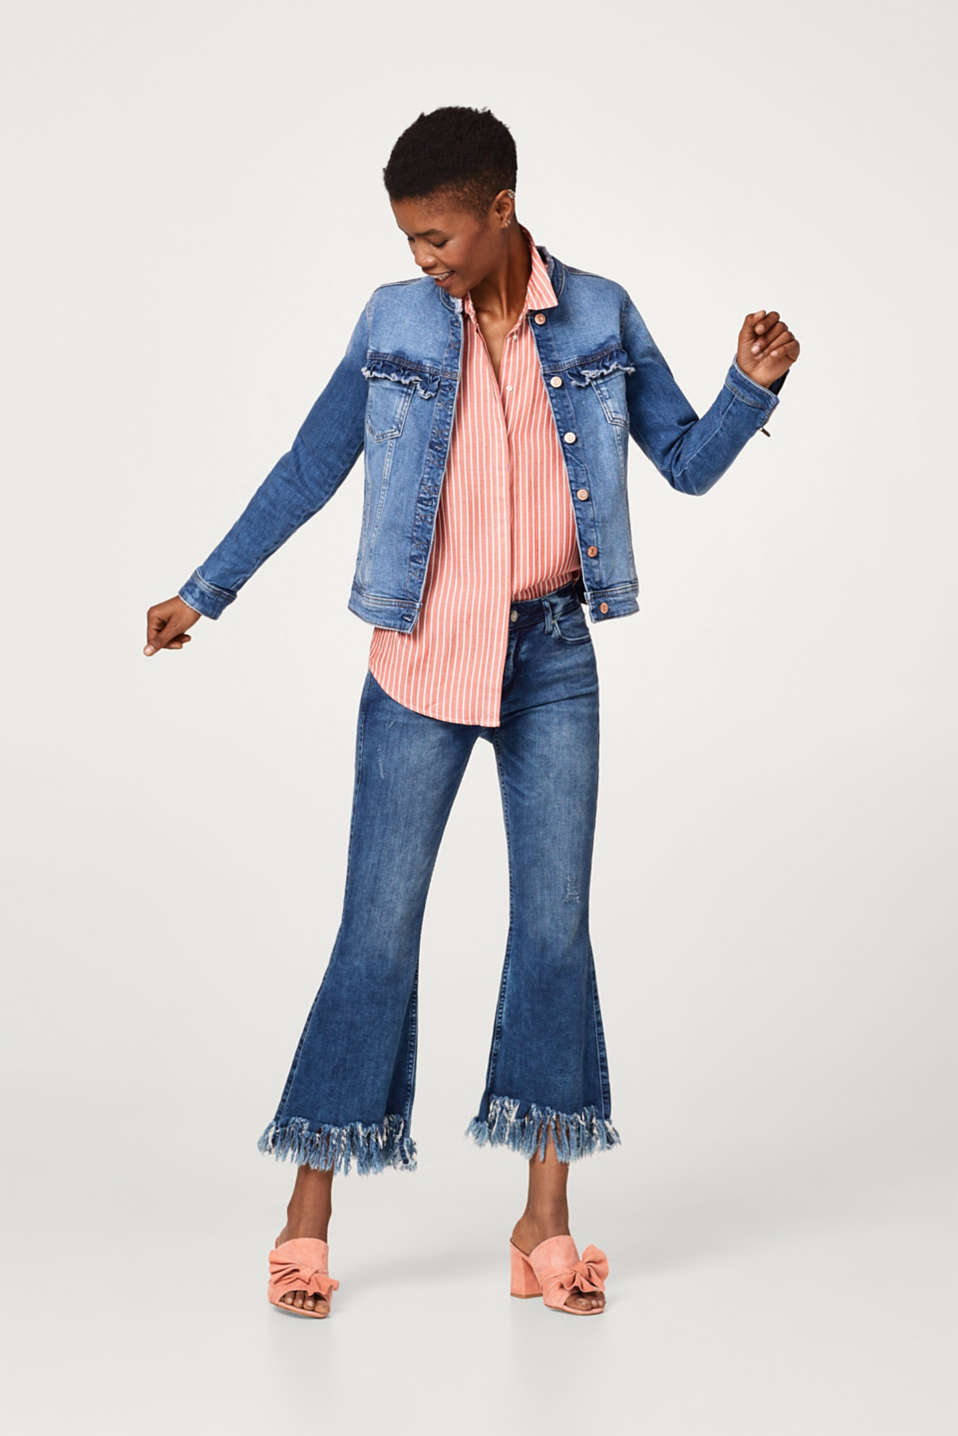 Casual, feminine denim jacket